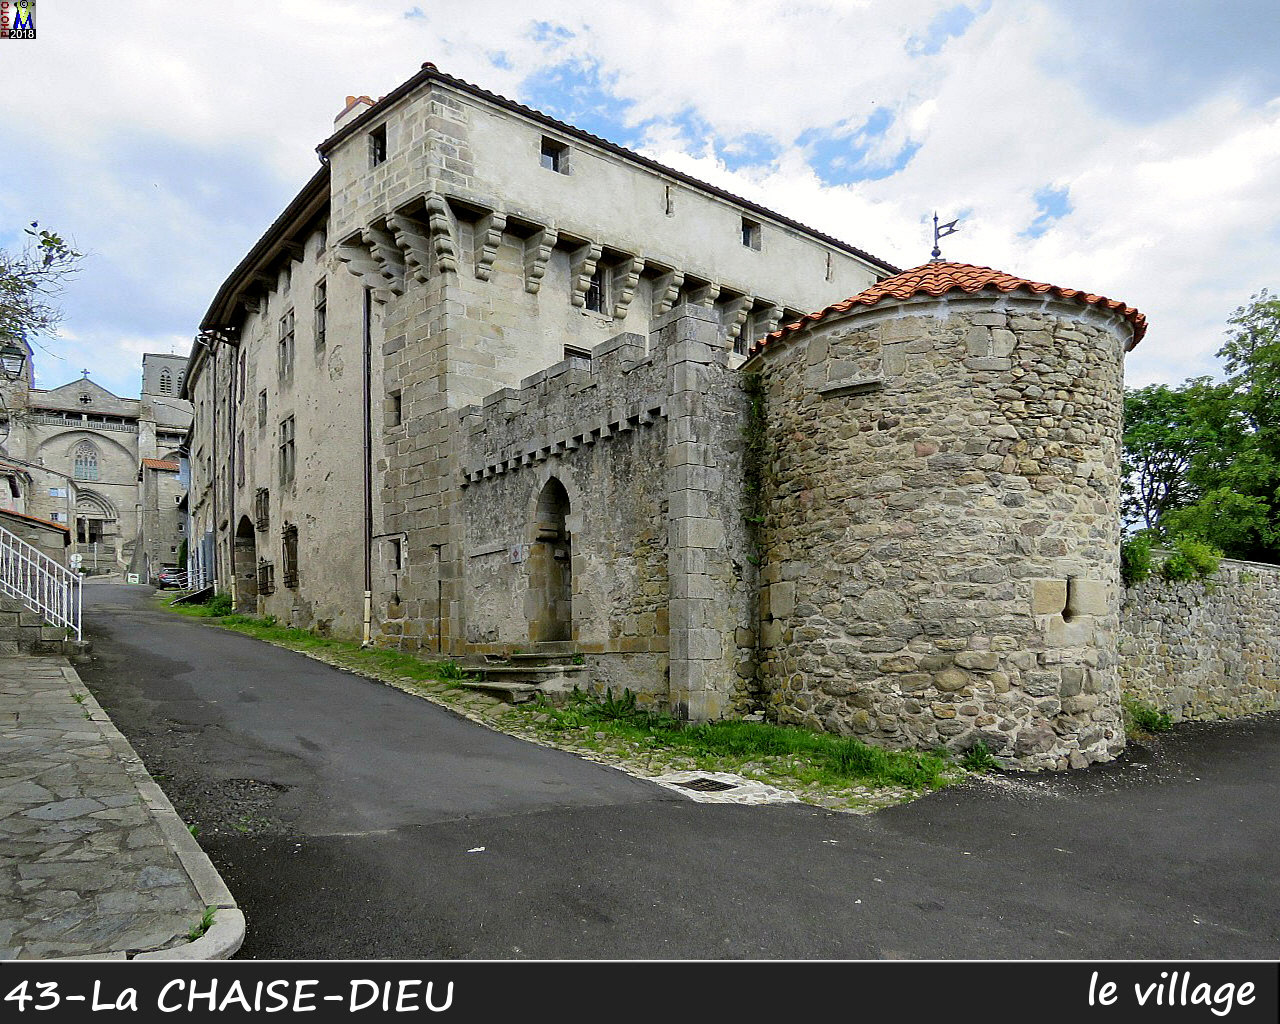 43CHAISE-DIEU_village_108.jpg